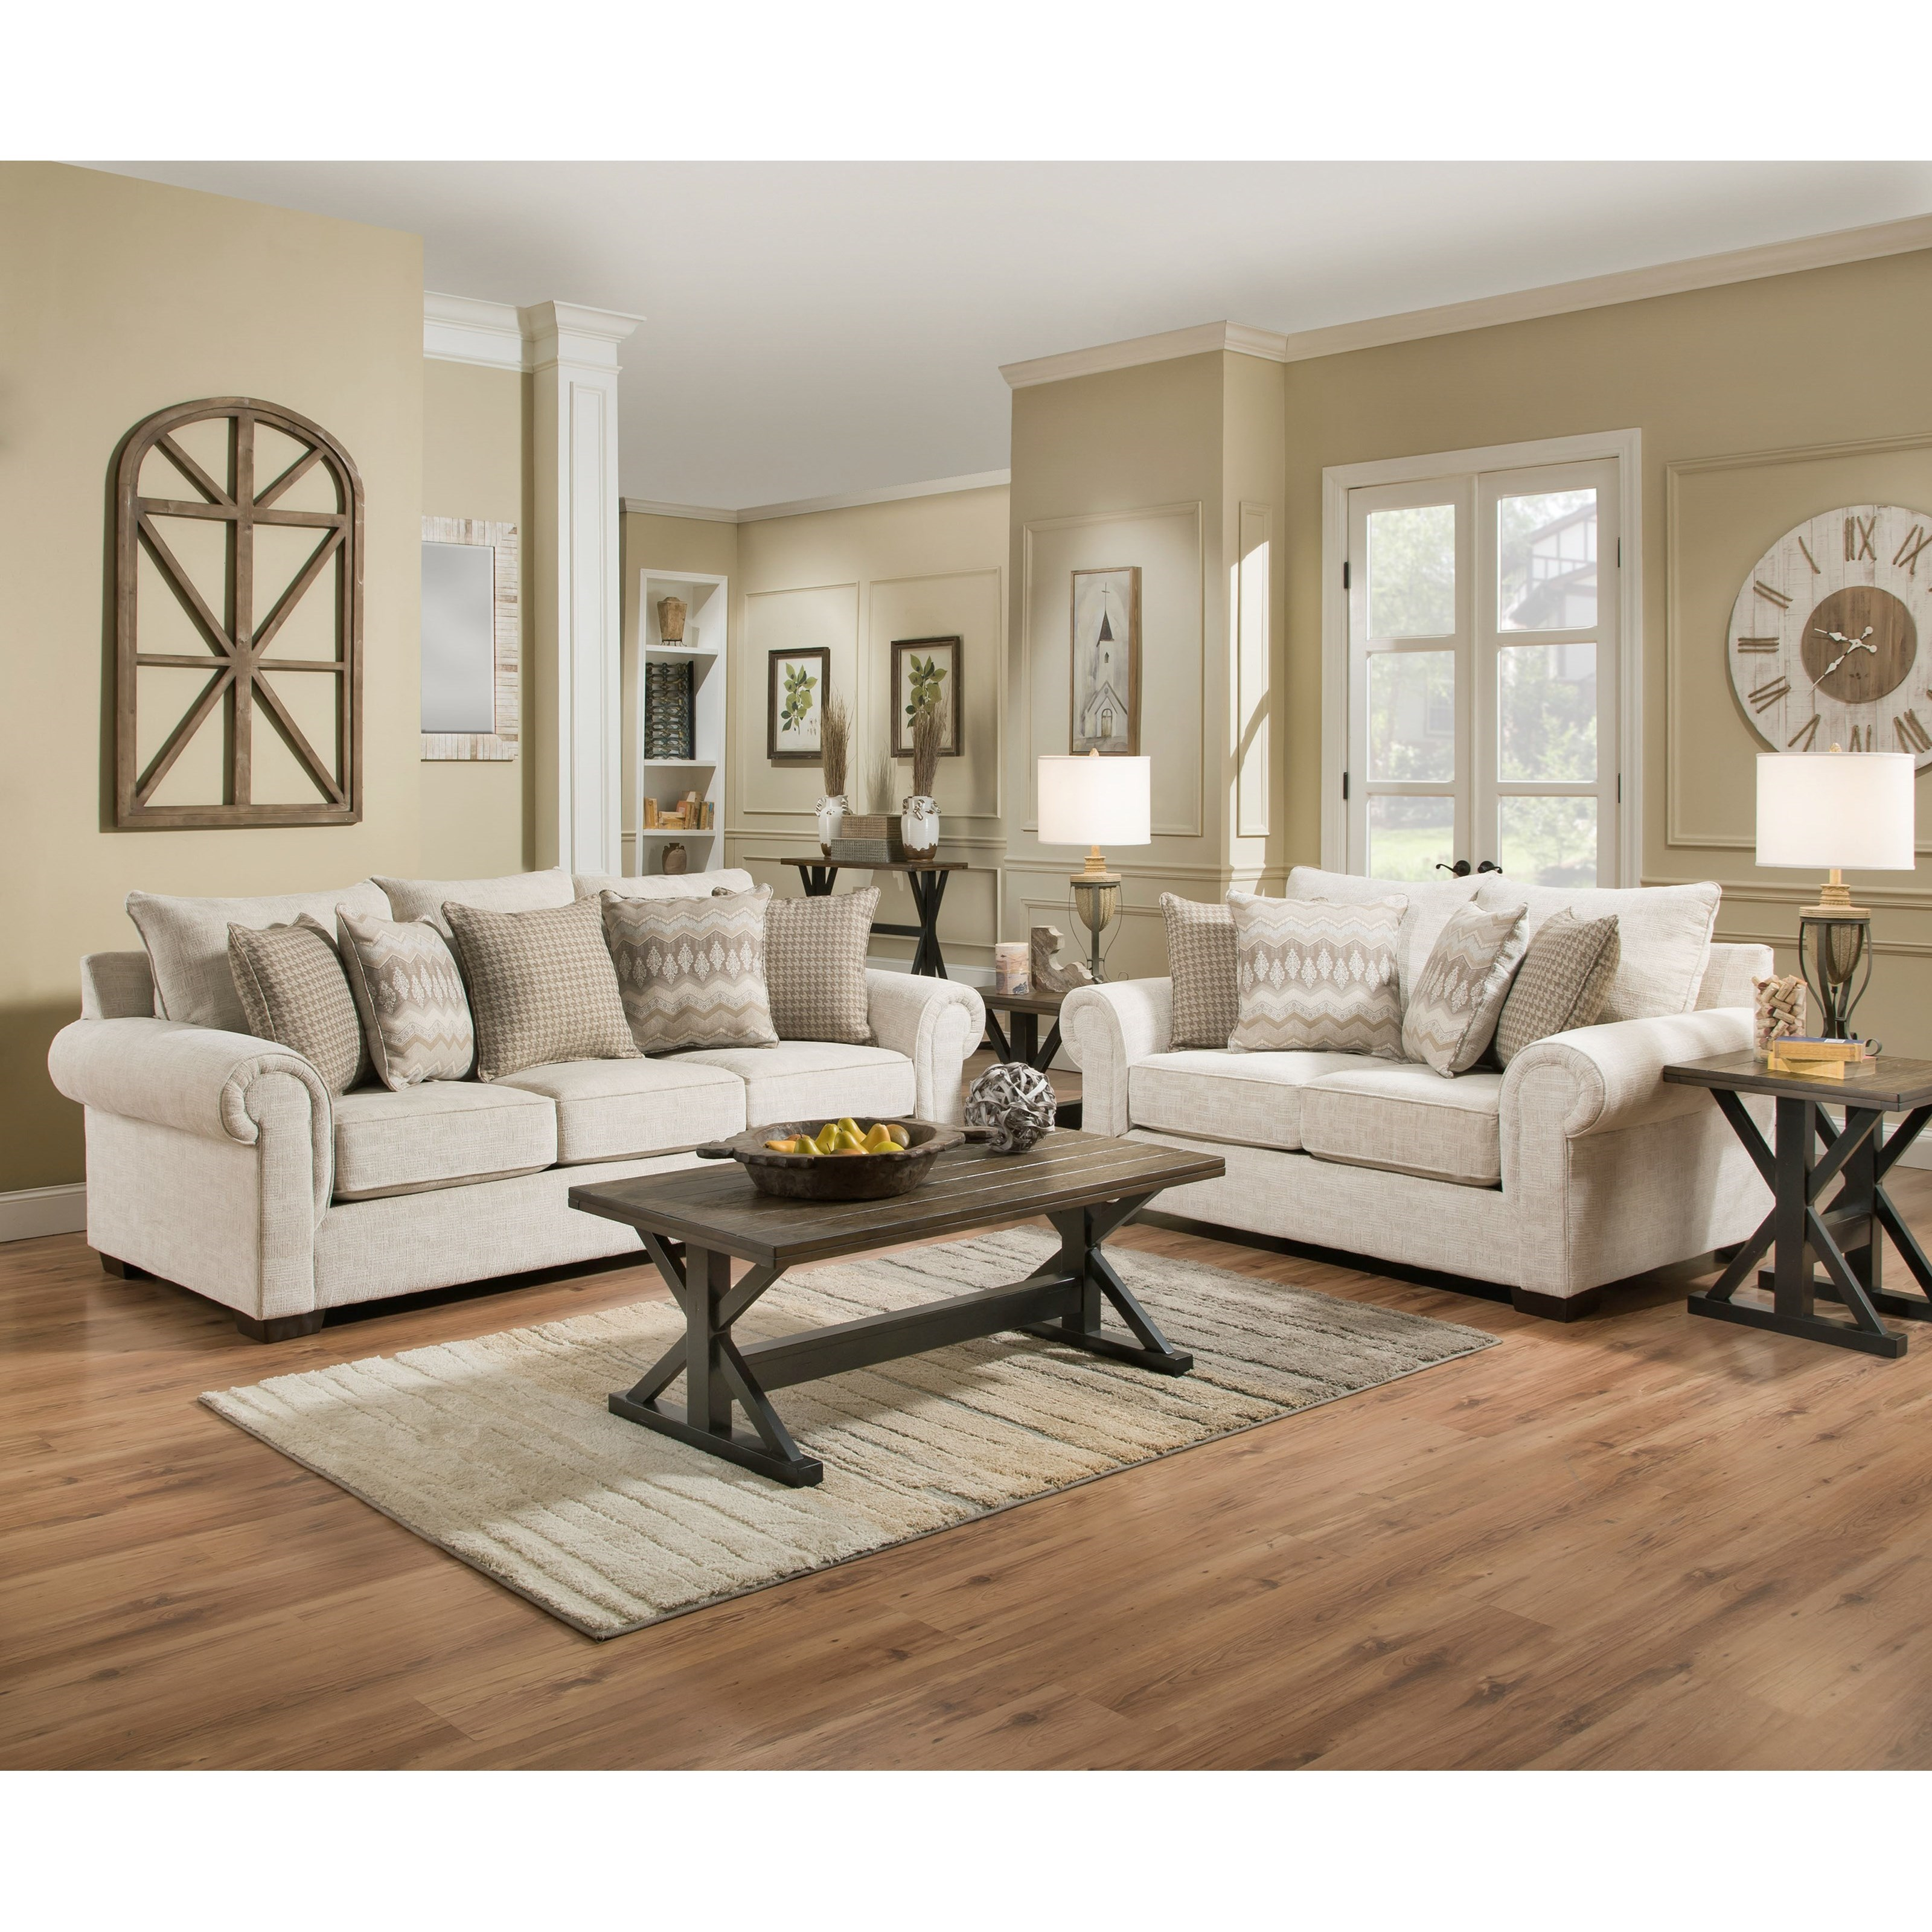 7592BR Living Room Group by United Furniture Industries at Pilgrim Furniture City